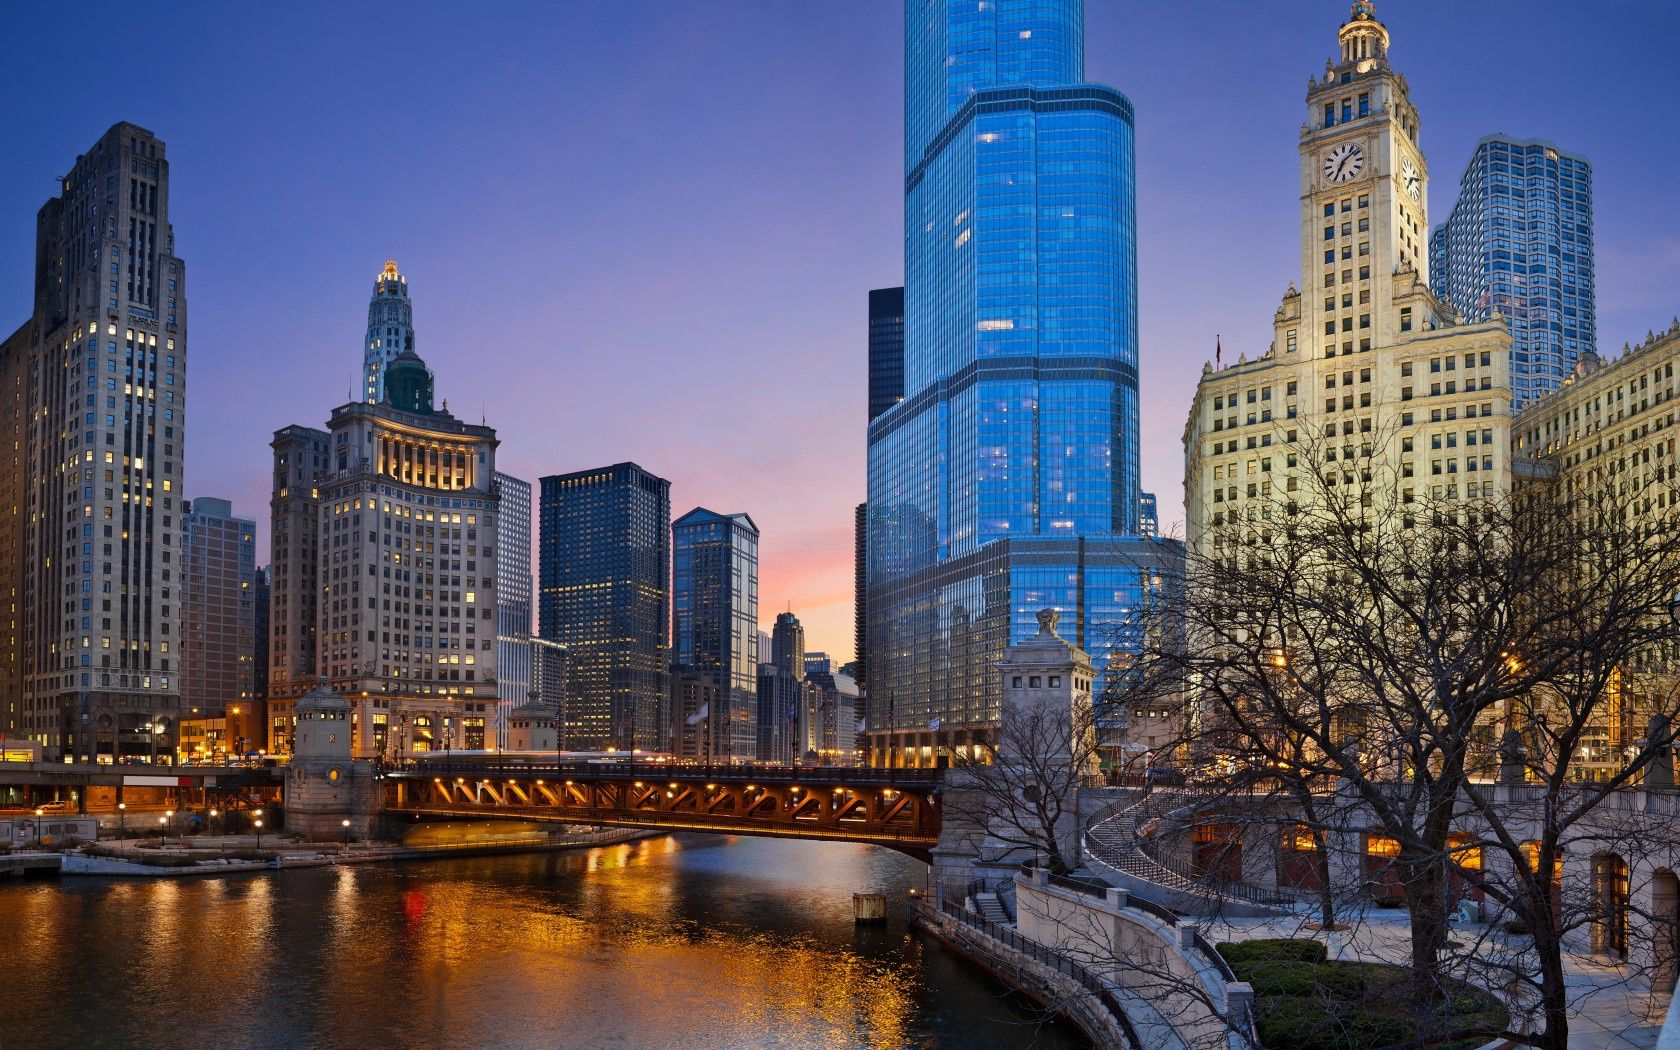 Gallery for e chicago wallpapers hd wallpapers pinterest chicago backround full hd backgrounds by kendall robertson voltagebd Gallery